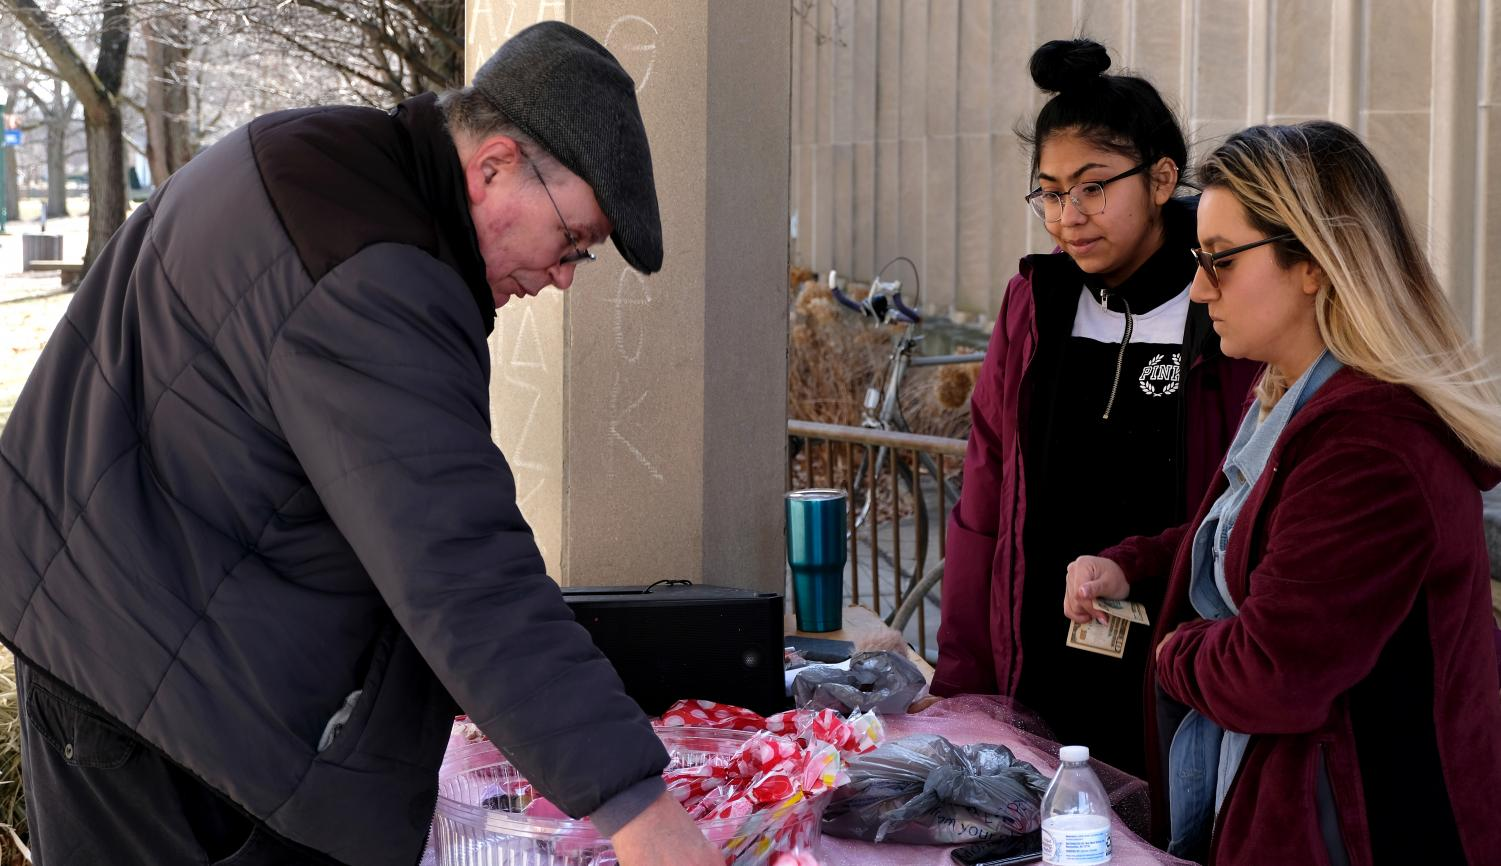 Esperanza members Yrely Robledo, an accounting major, and Gina Canchola a business management major, sell a man chocolate covered deserts Thursday afternoon outside of Coleman Hall.